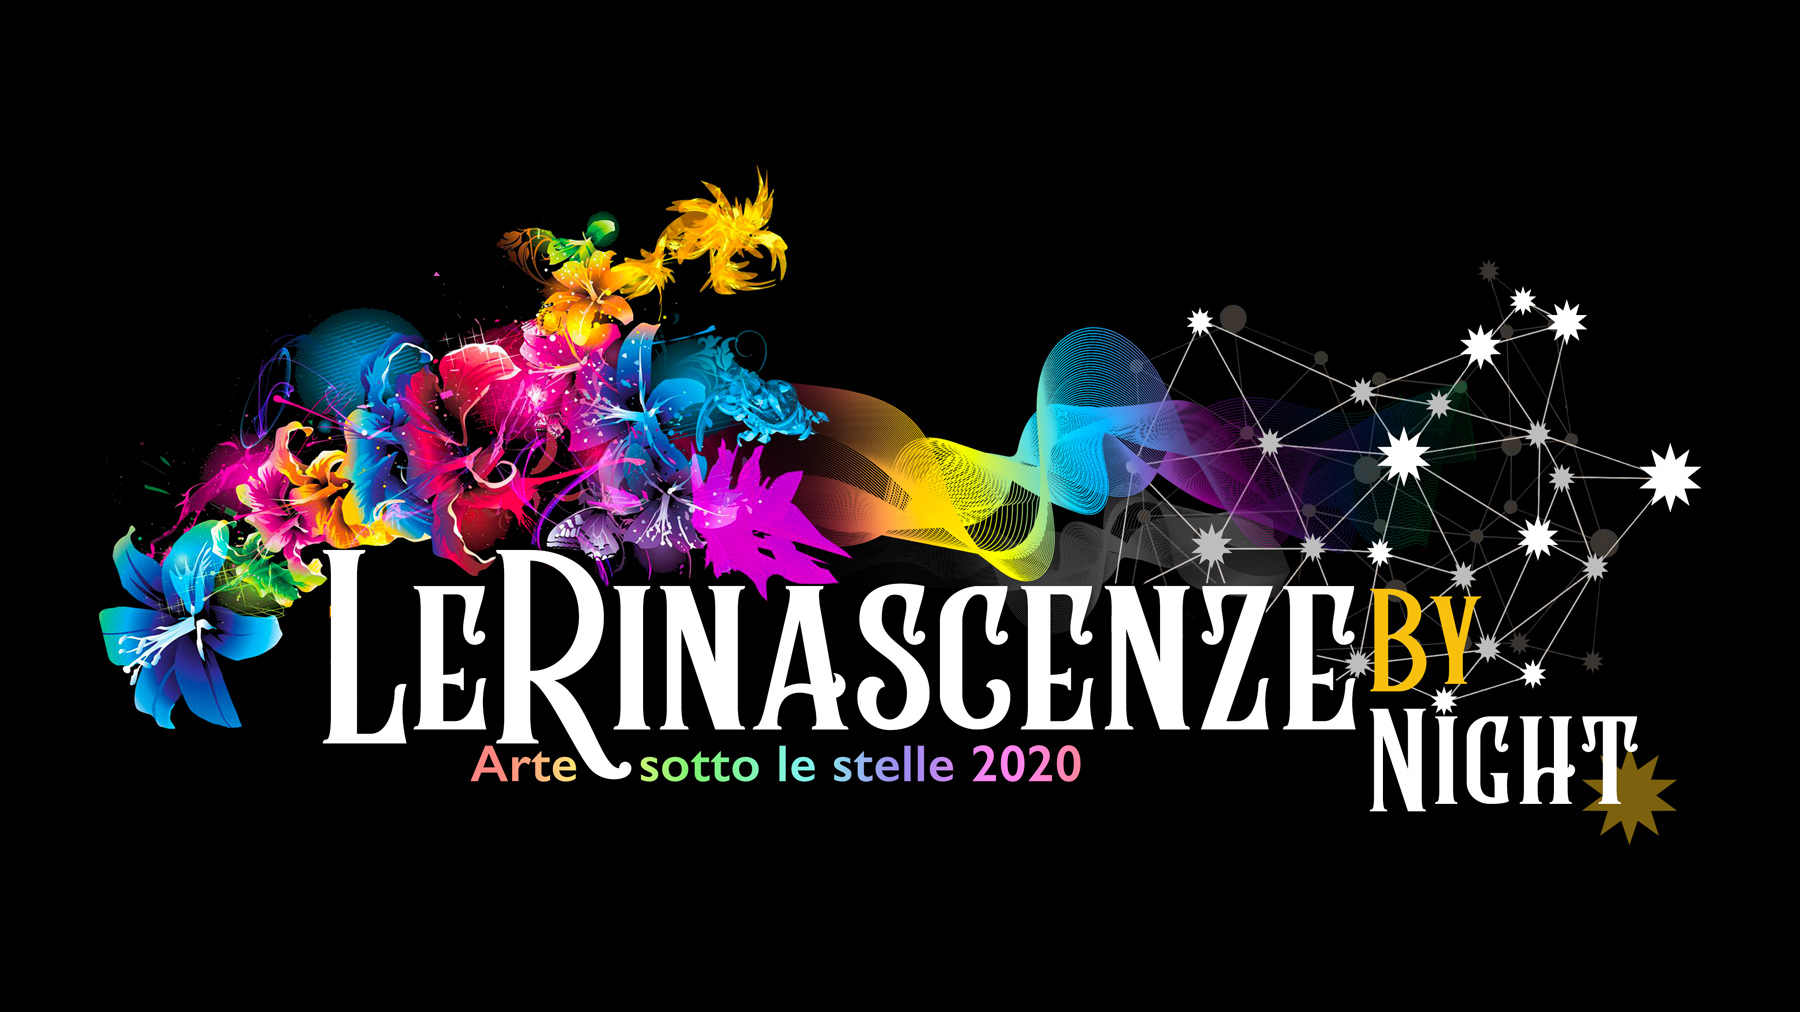 Le Rinascenze By Nigt logo